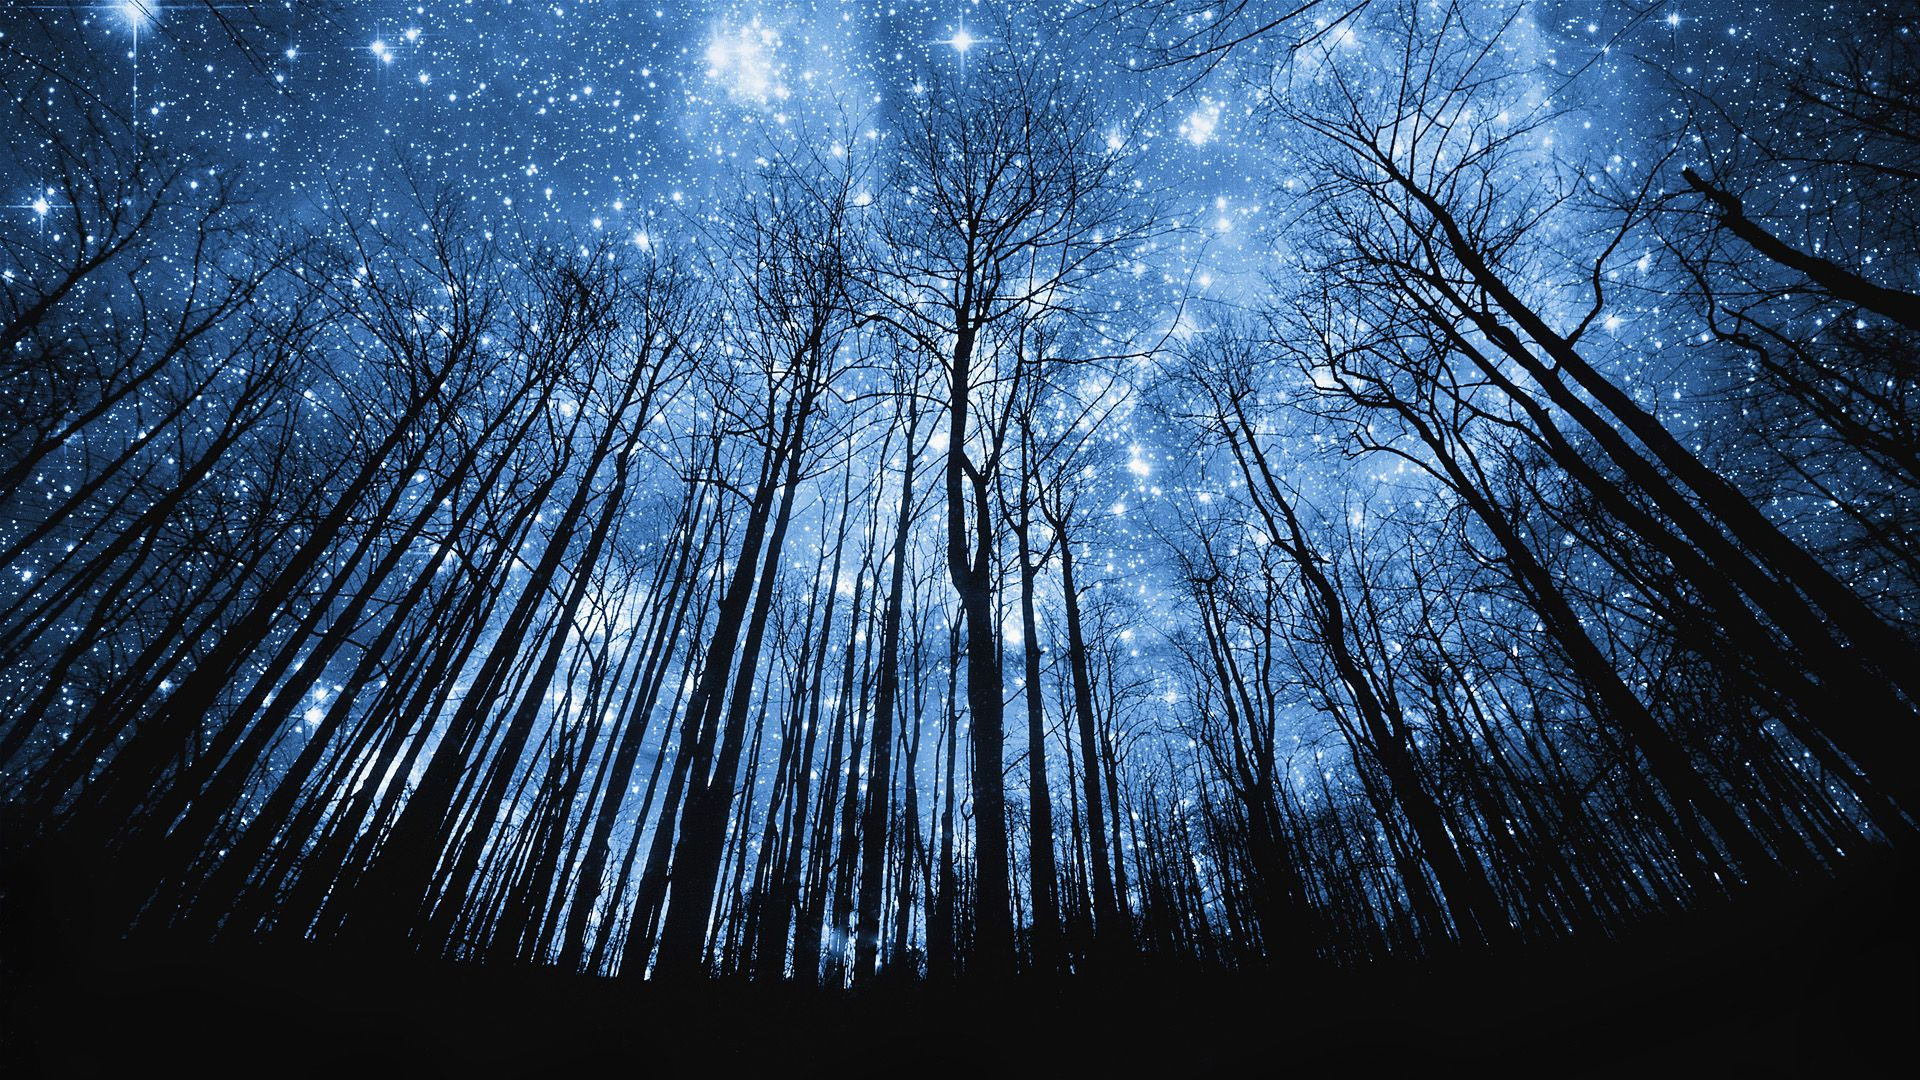 Pin By Michael Altman On Nature To Paint Night Sky Wallpaper Starry Night Wallpaper Starry Night Sky Wallpaper starry sky stars forest night